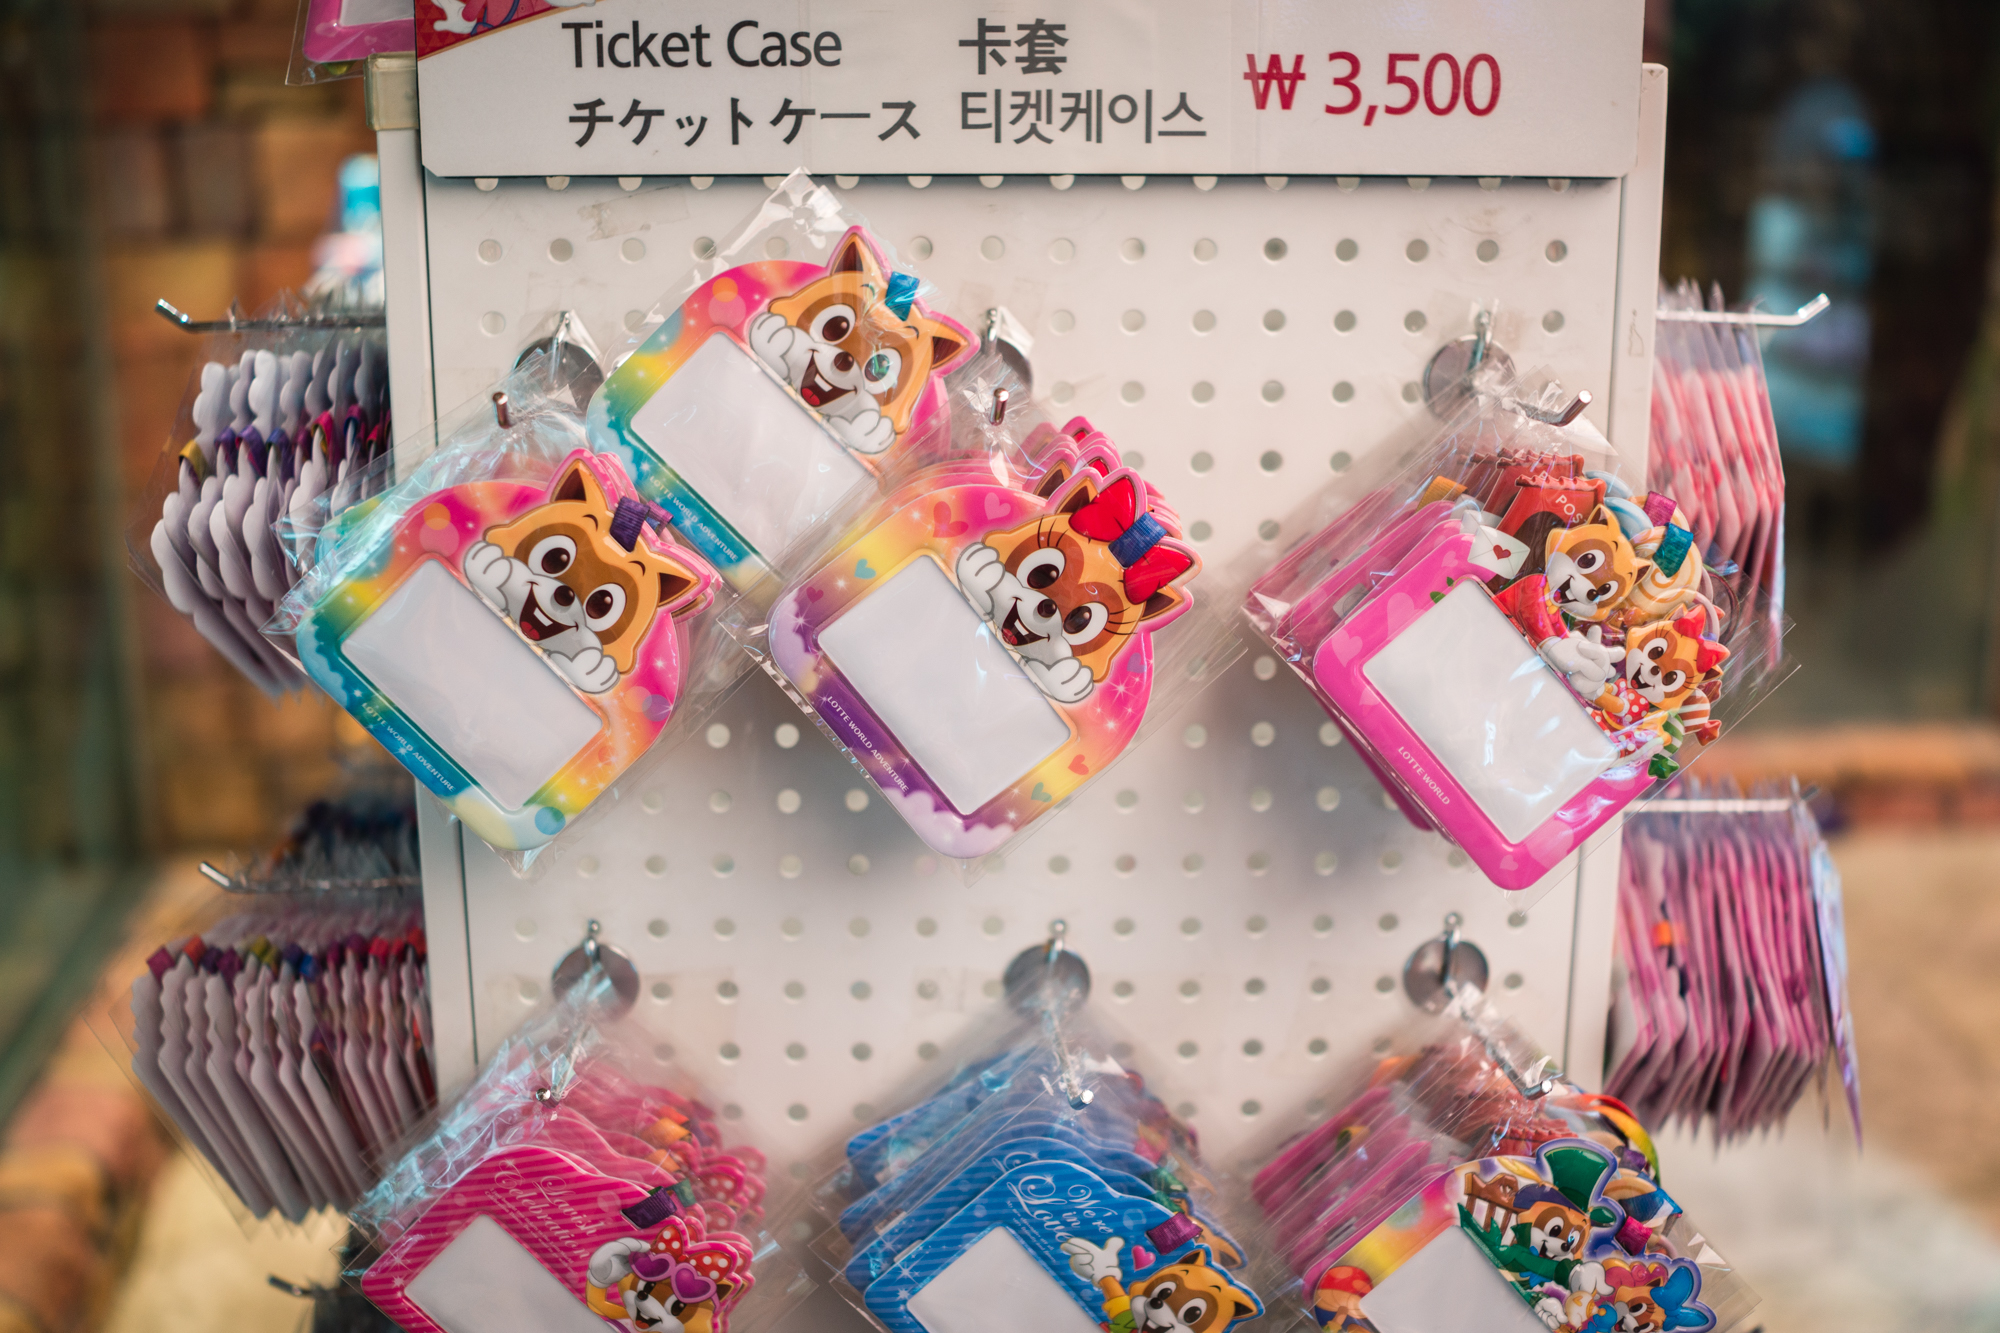 Ticket Tags at Lotte World